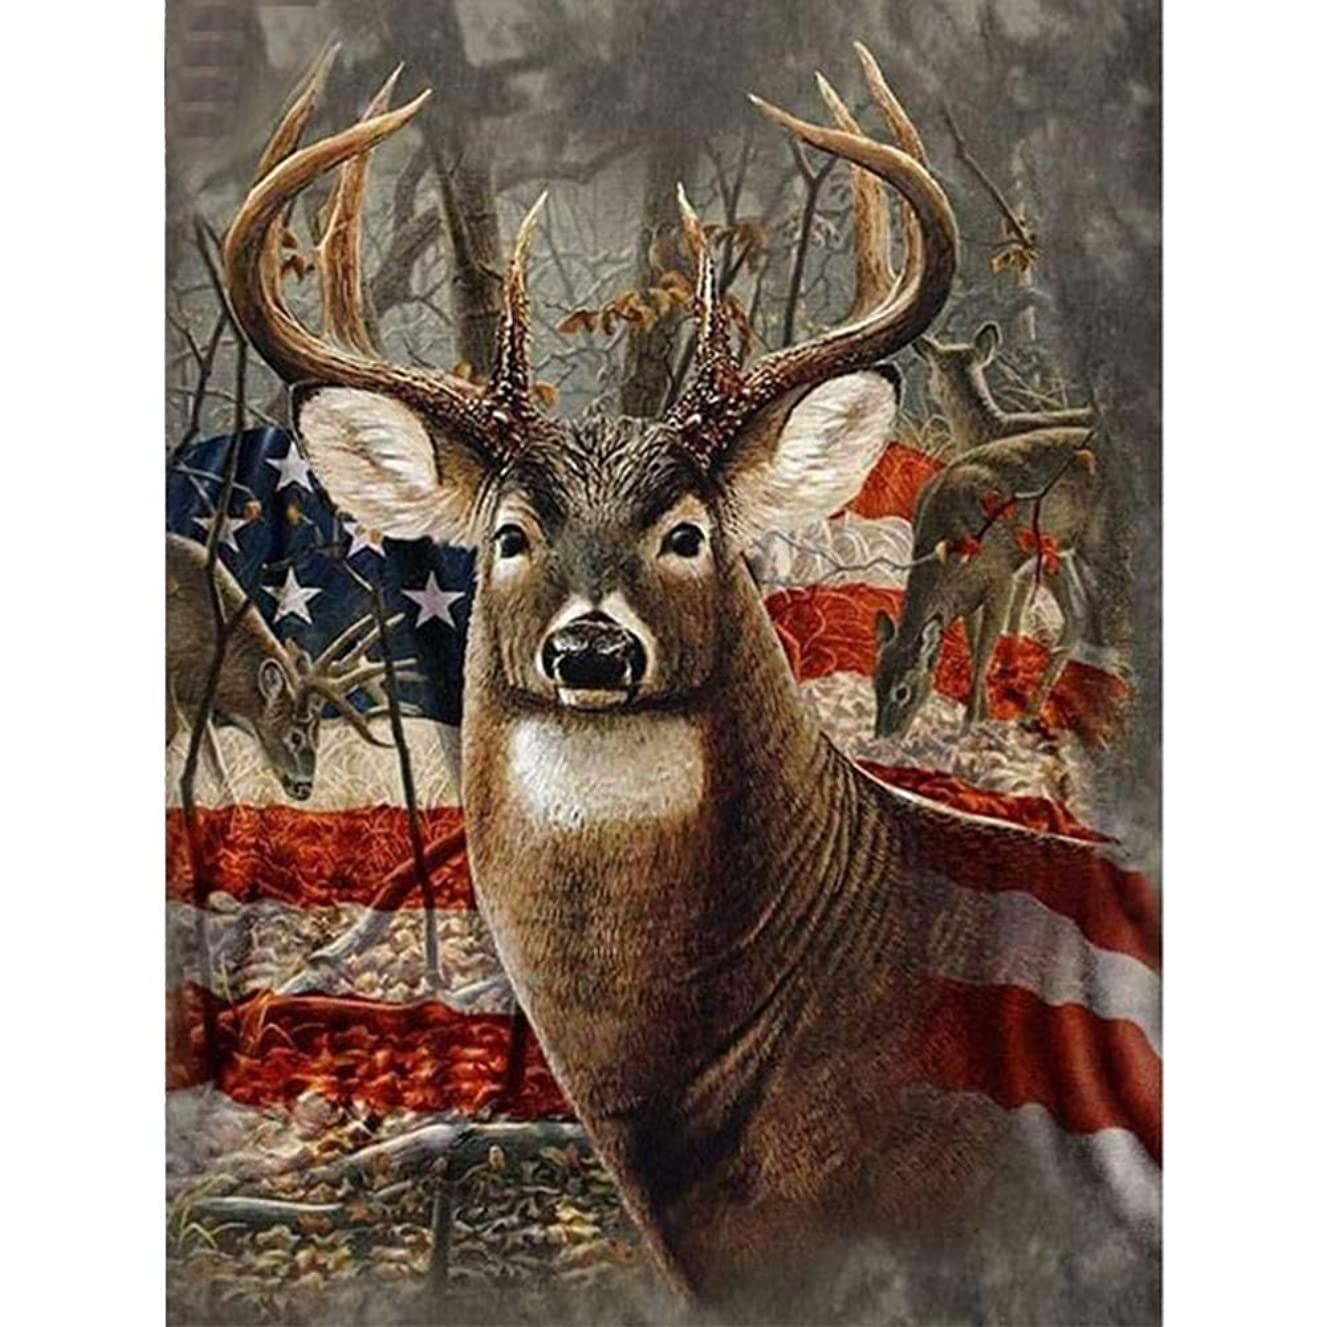 5D Diamond Painting Kits for Adults Full Drill The Americana Deer Embroidery Rhinestone Painting-Cross Stitch Arts Craft for Home Wall Decor Gift